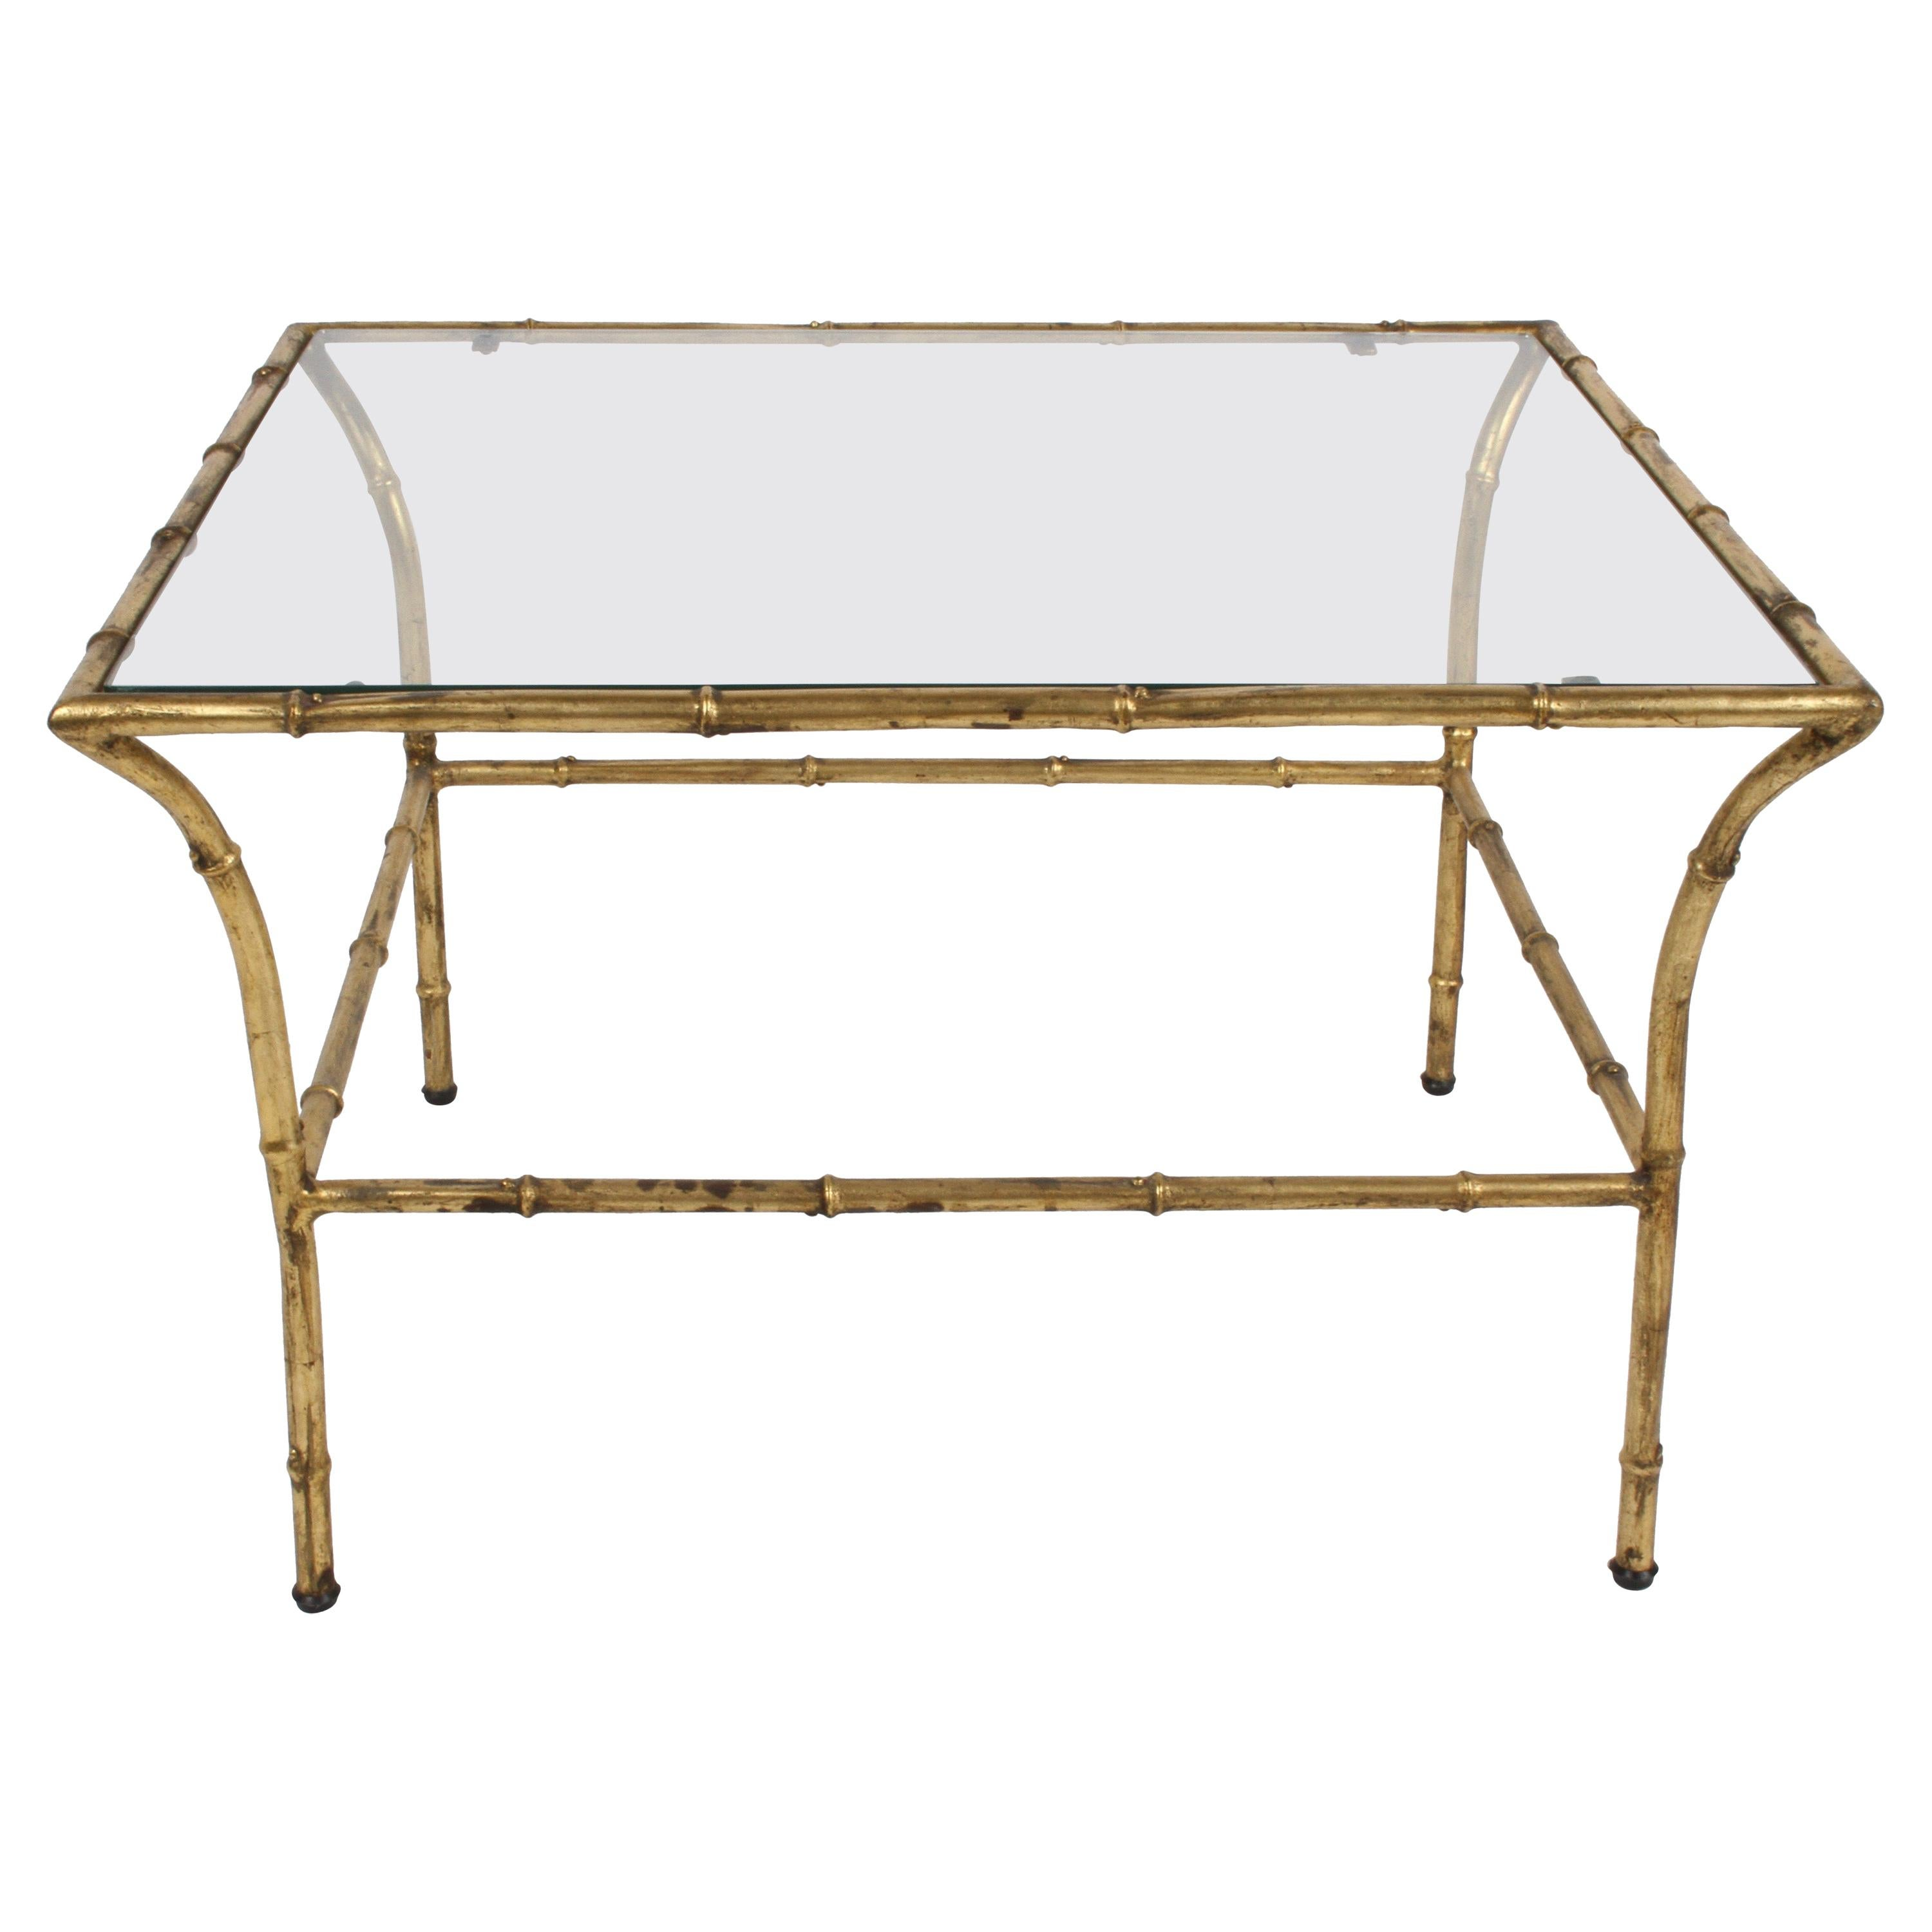 Italian Hollywood Regency Gold Gilt Faux Bamboo Glass Top Side or End Table